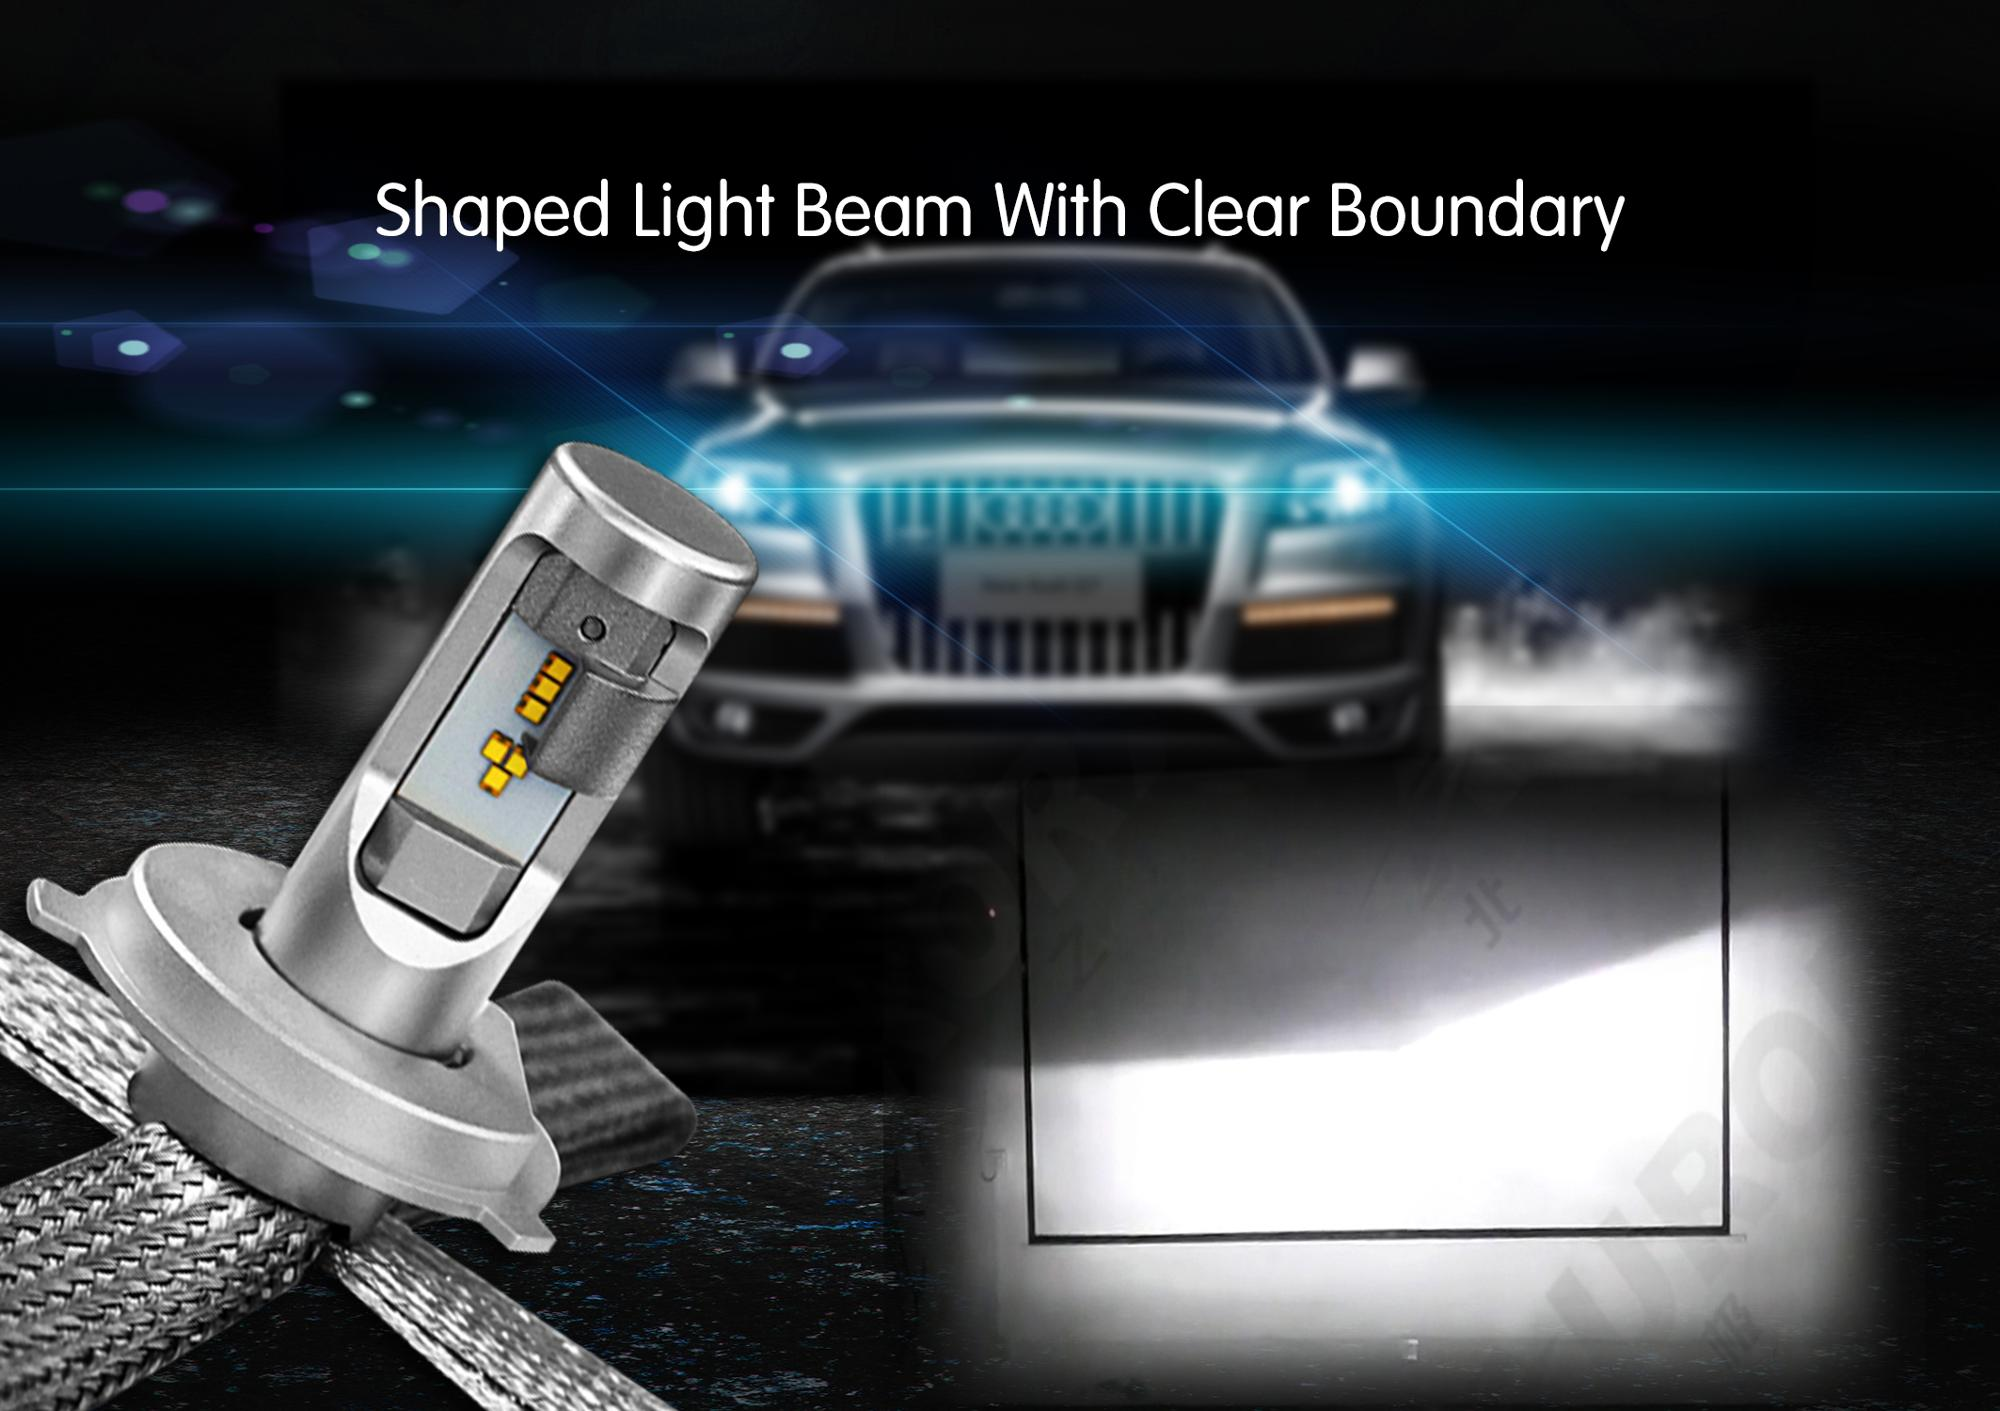 Best 12v automotive led lights H4 h7 car headlight bulb h15 9005 9006 no radio interference led headlights for cars